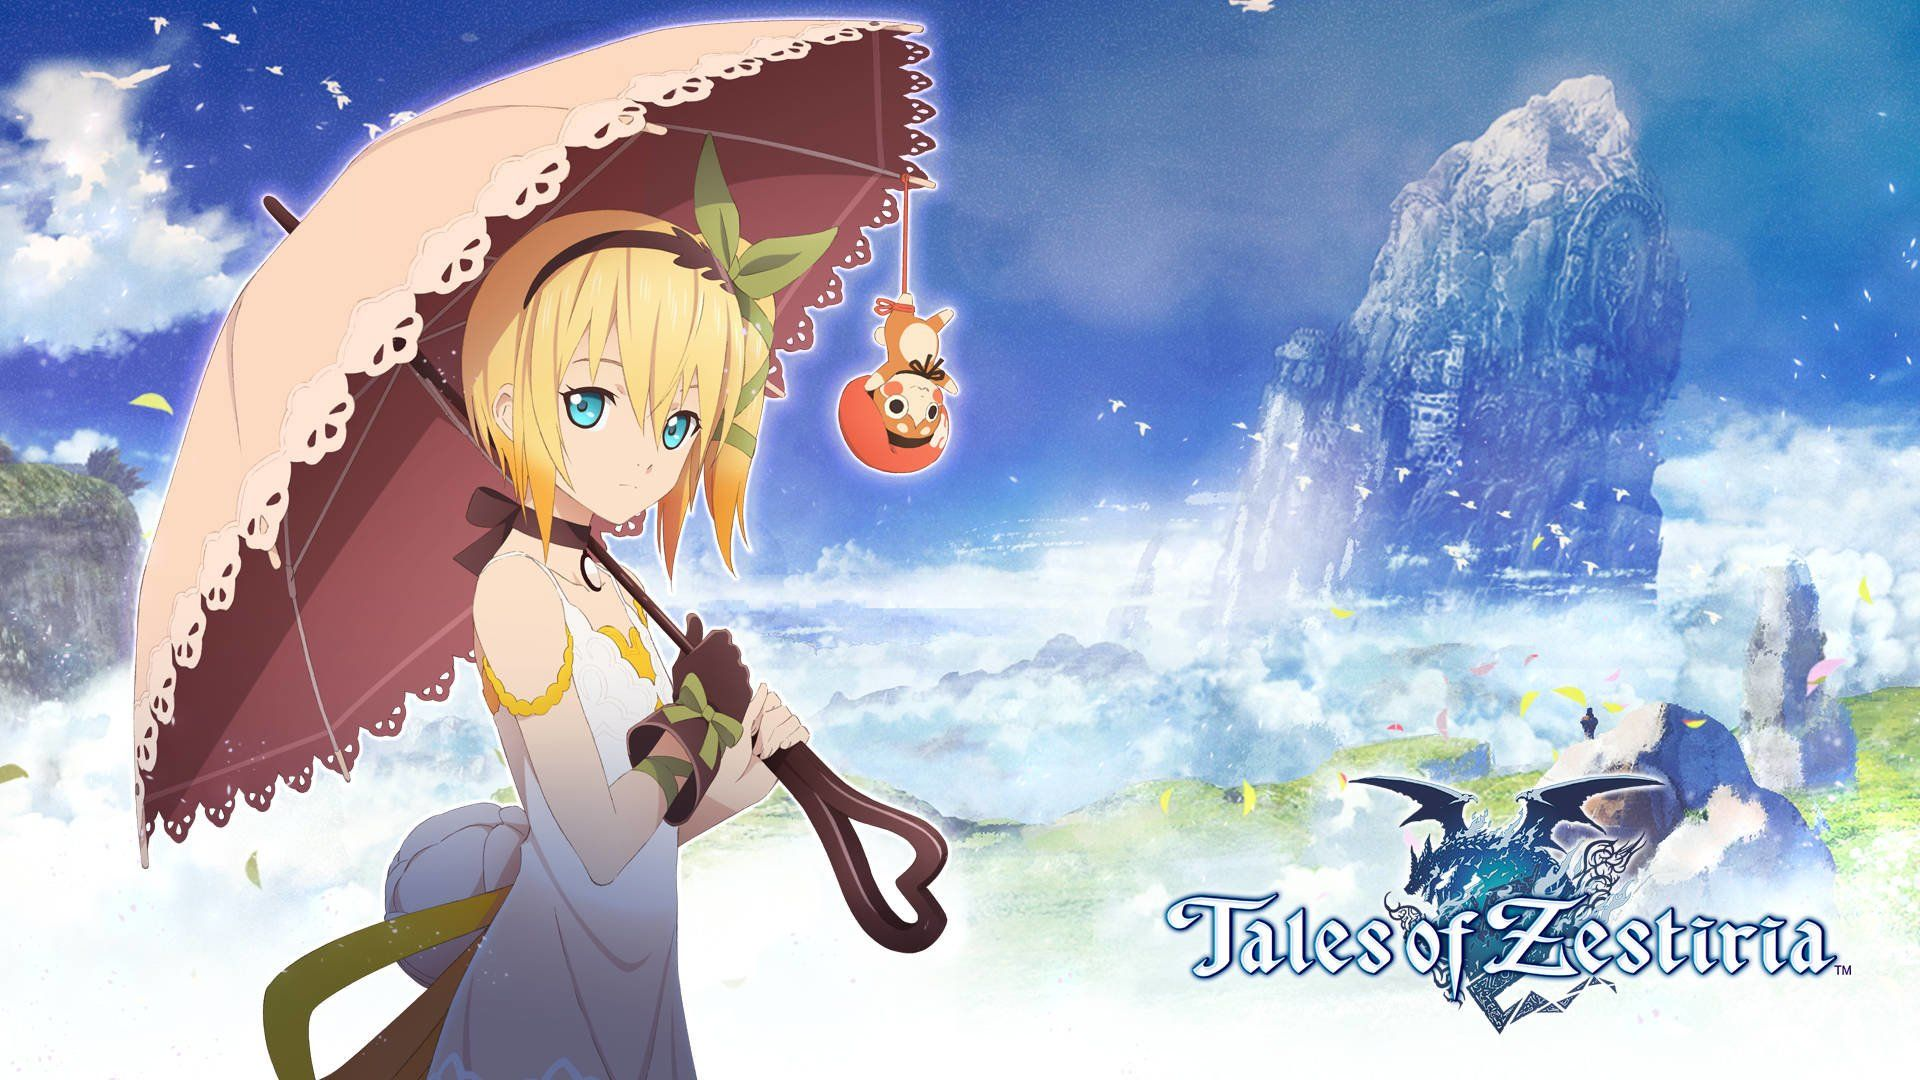 1920x1080 Tales Of Zestiria Wallpaper Background Image View Download Comment And Rate Wallpaper Abyss Tales Of Zestiria Wallpaper Backgrounds Anime